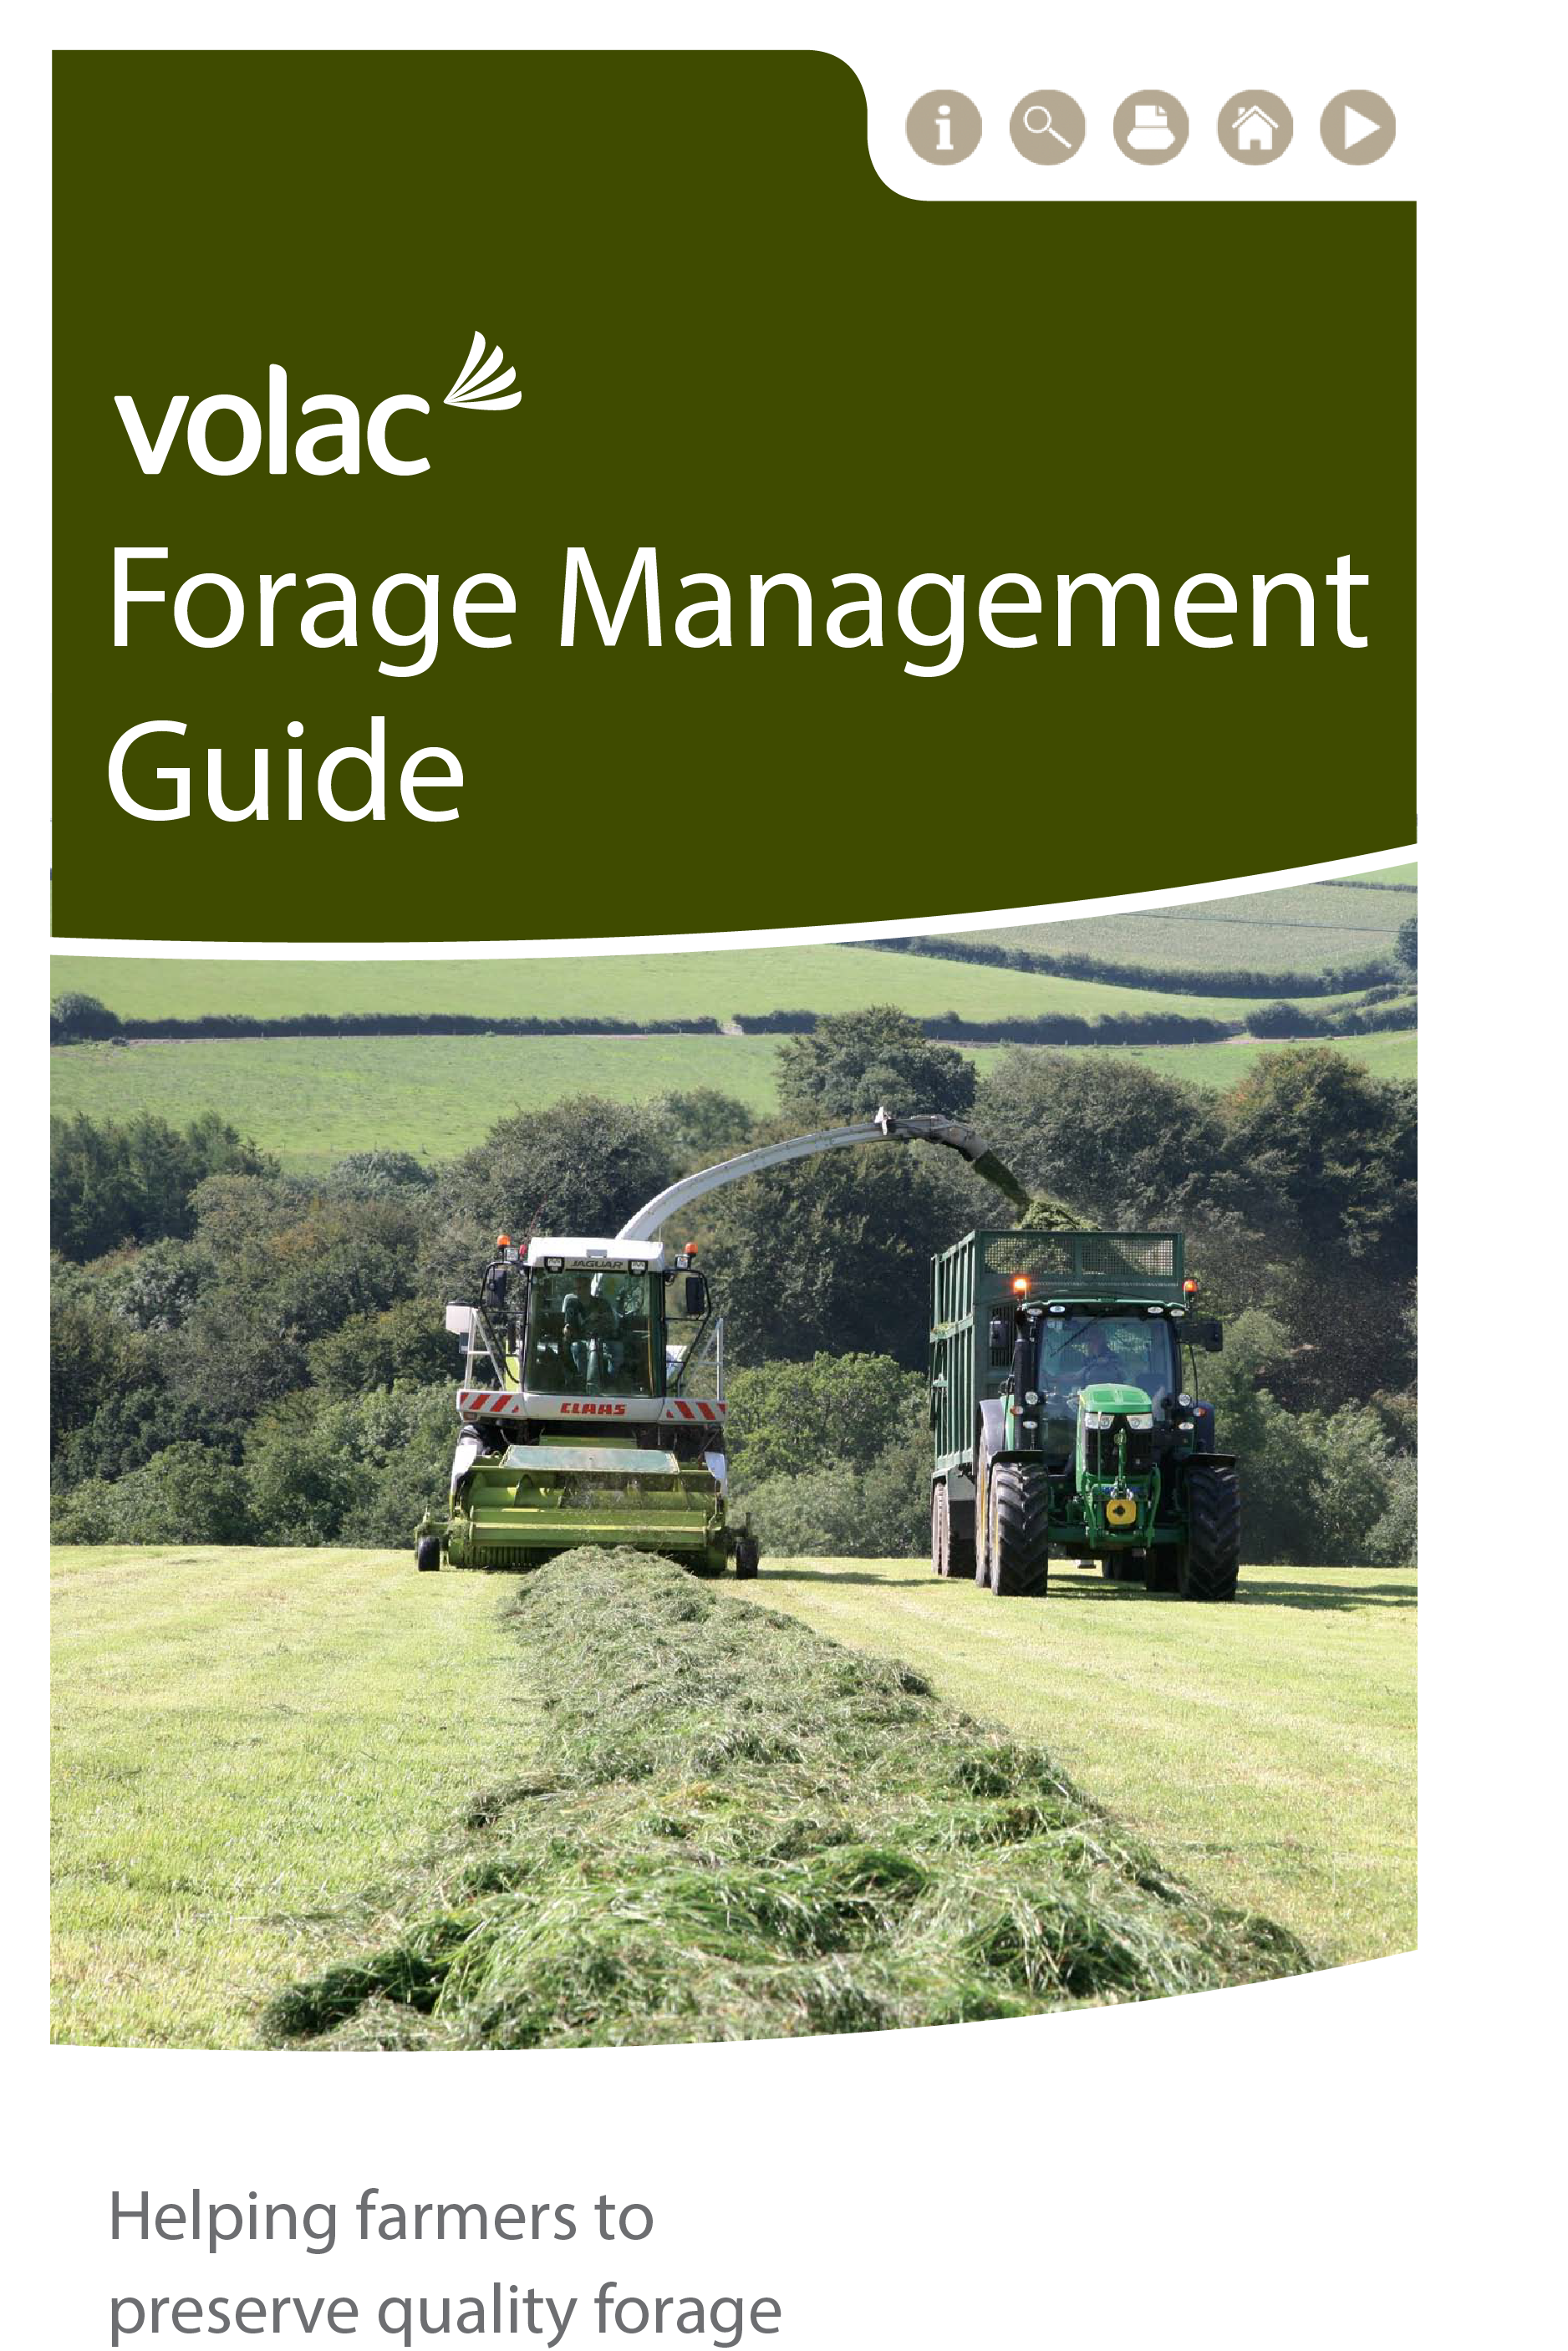 volac-forage-management-brandman_original.png